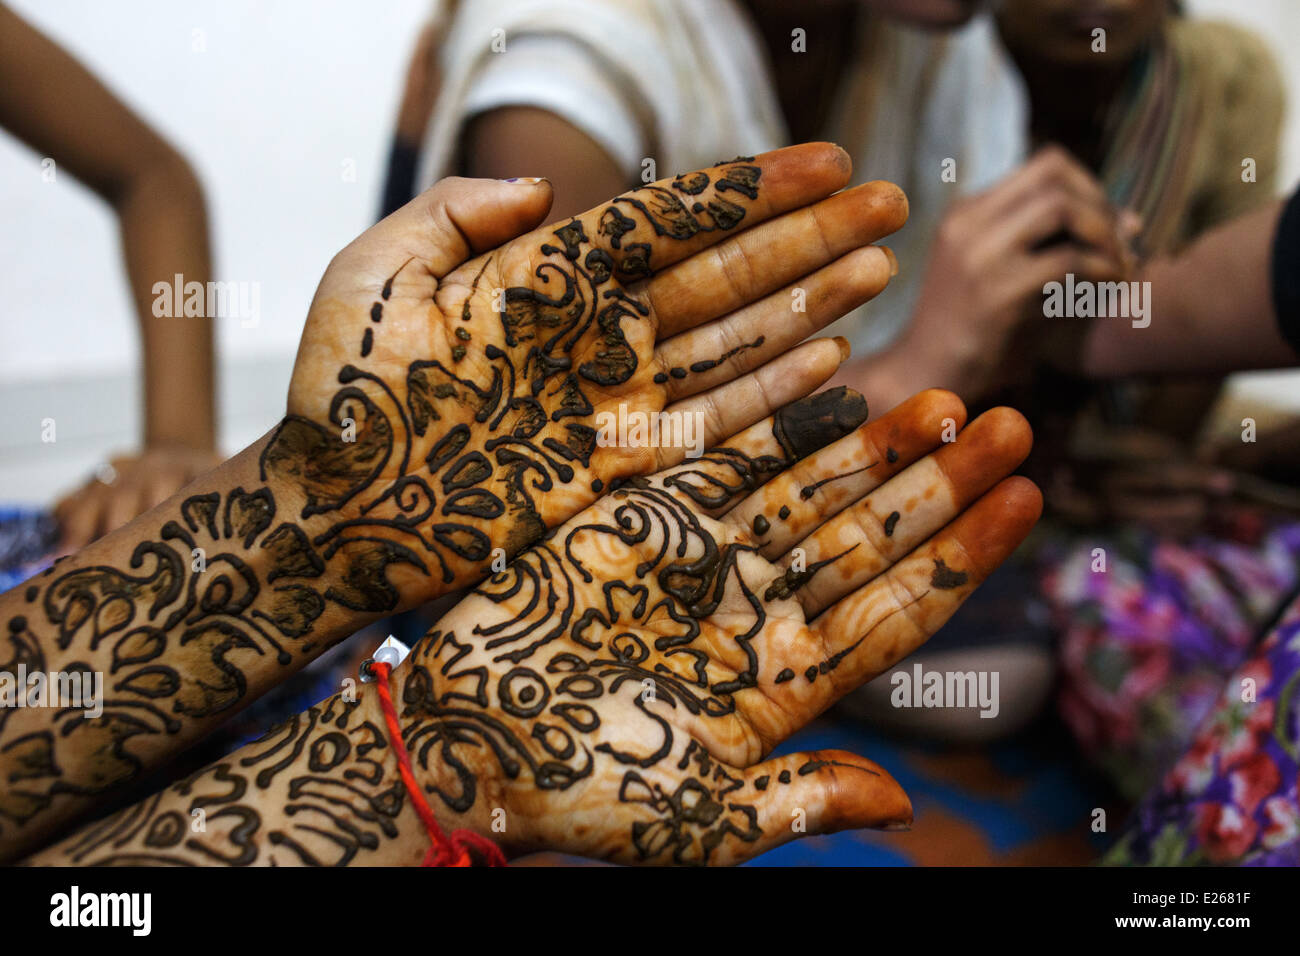 Henna Art Stock Photos Amp Henna Art Stock Images Alamy